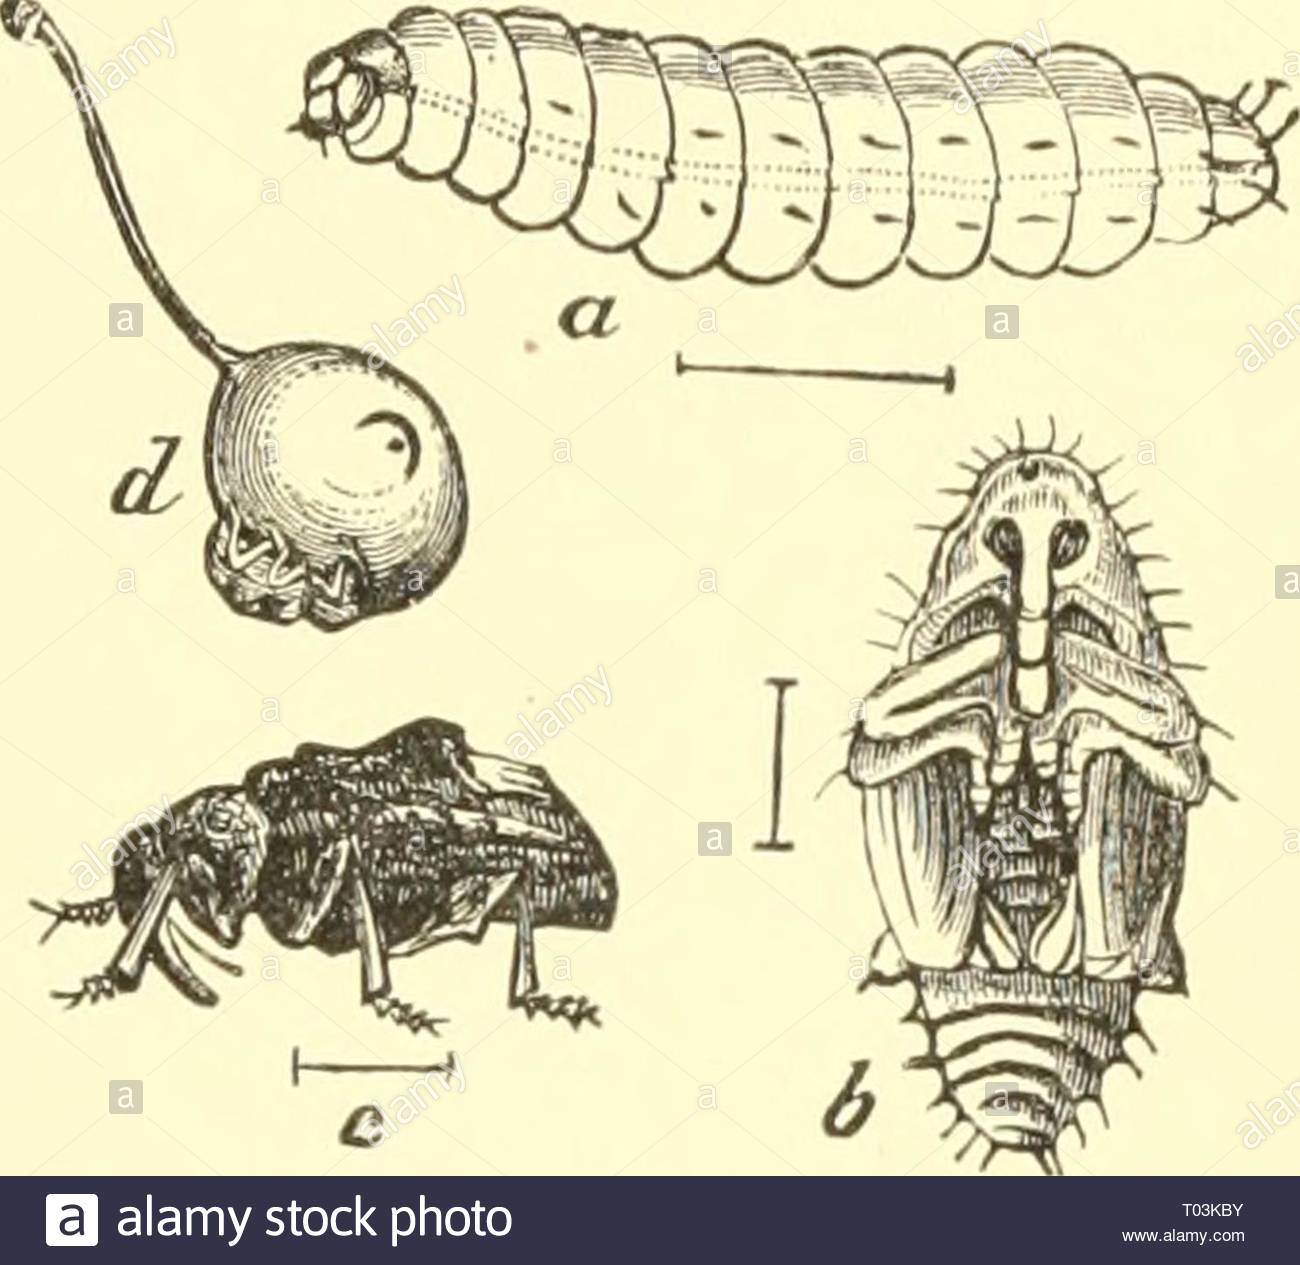 economic entomology for the farmer and the fruit grower and for use as a text book in agricultural schools and colleges economicentomolo00smit year 1906 the insect world n3 fig 240 plum curculio cotiotraclirns iirini phara larva 3 pupa c adult luni show ing a crescent mark leaves of plum peach apricot cherry apple and pear when the fruit has set and be e of the size of a marble the insect makes a crescent shaped slit elevating a small flap from the sur rounding tissue and in this it lays an g the latter hatches in a few days and the whitish grub lik T03KBY